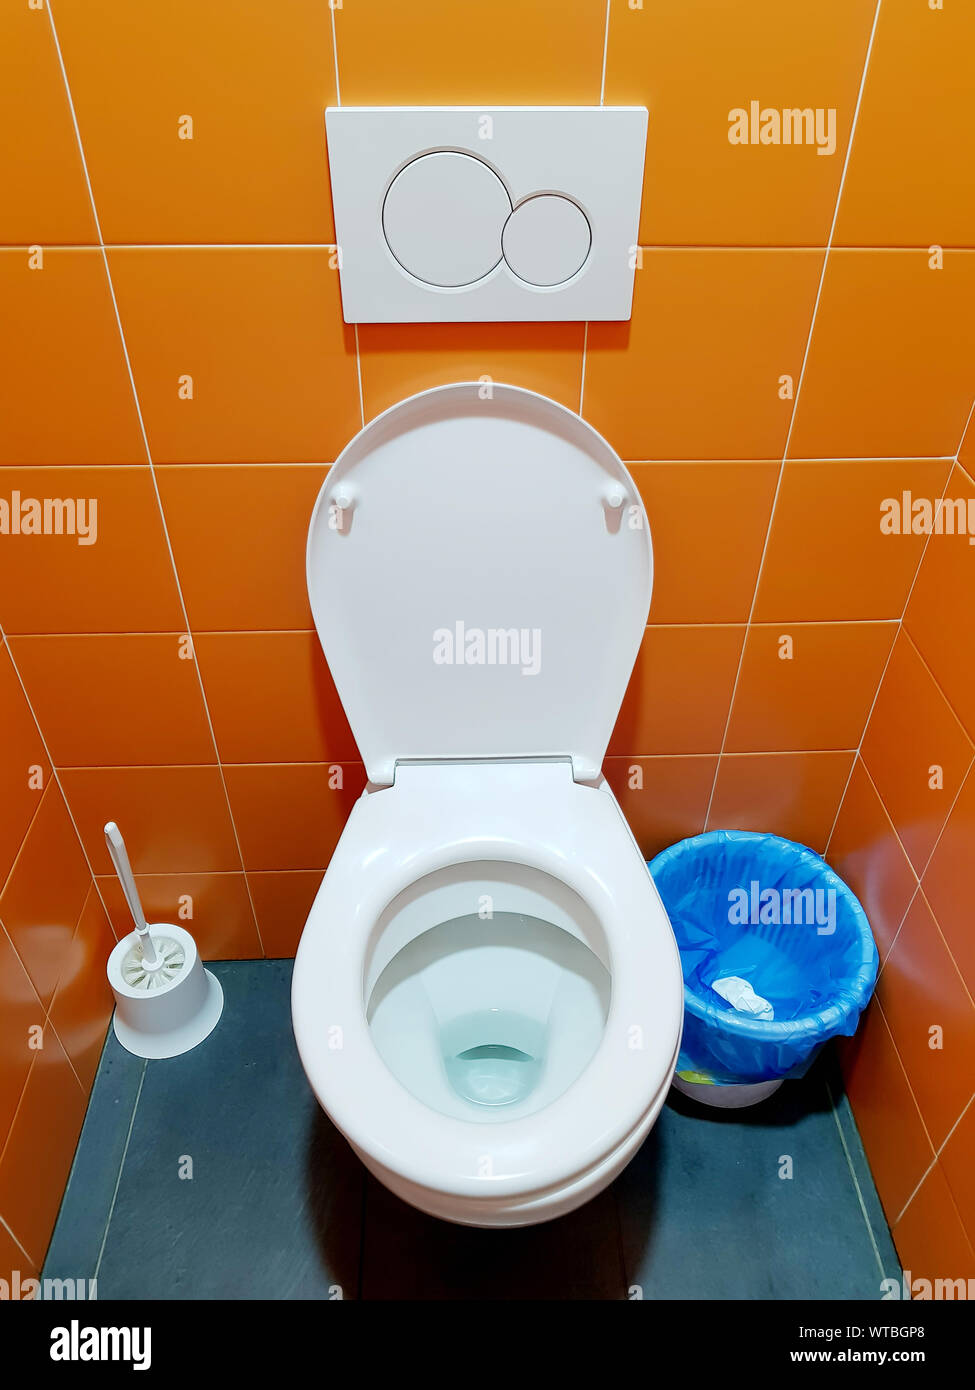 White toilet bowl in the bathroom with orange wall. Cramped little bathroom. Stock Photo